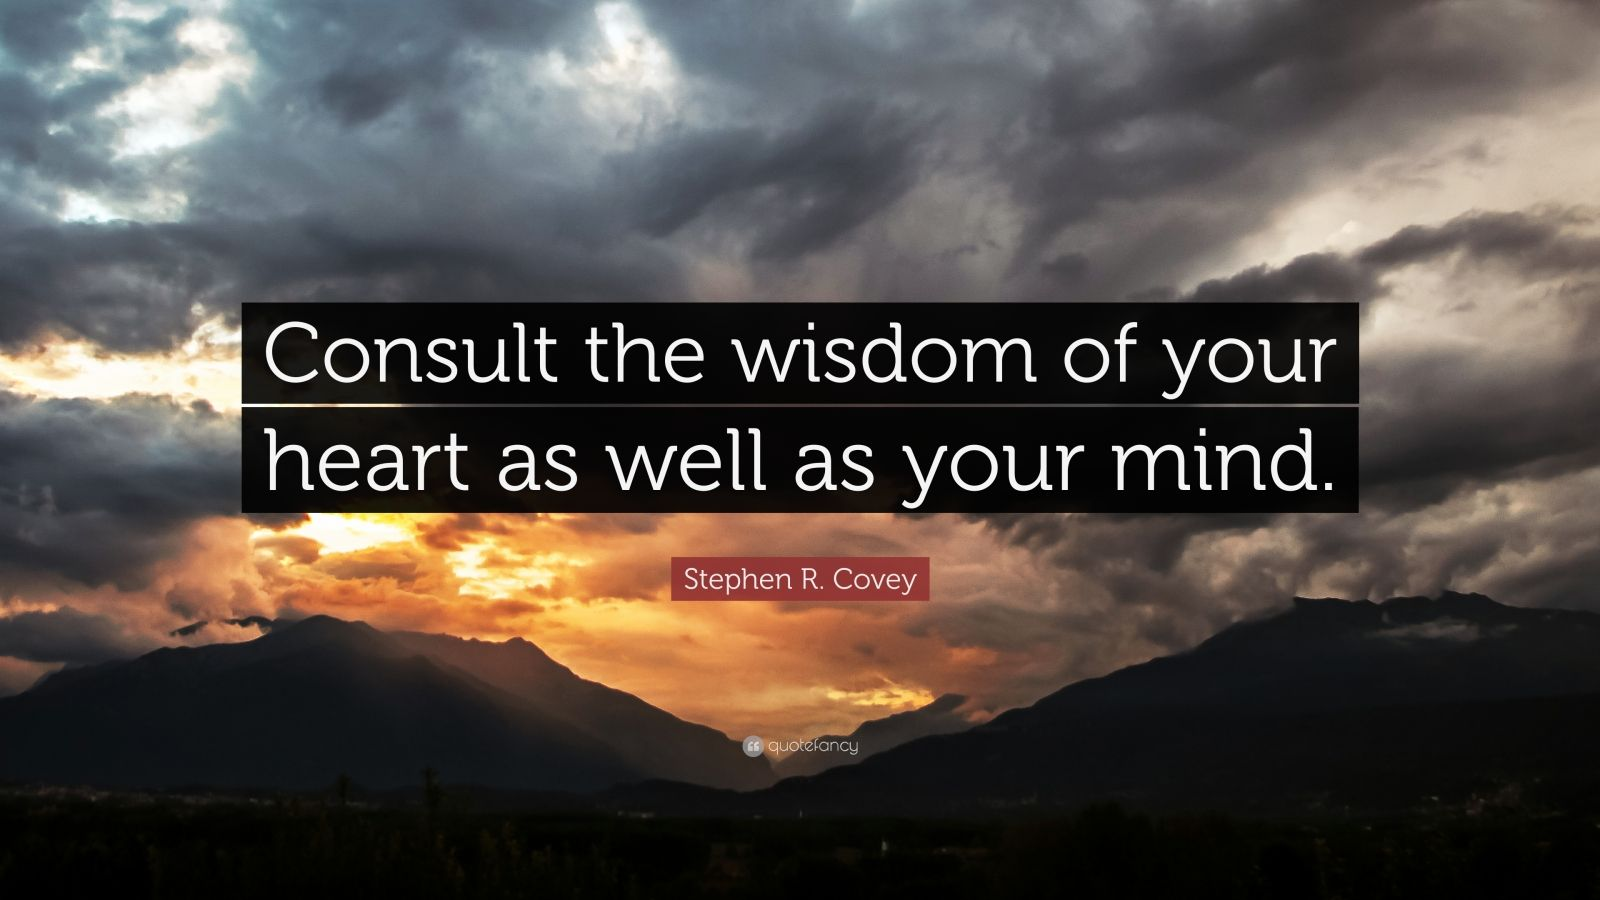 """Stephen R. Covey Quote: """"Consult the wisdom of your heart as well as your mind."""""""